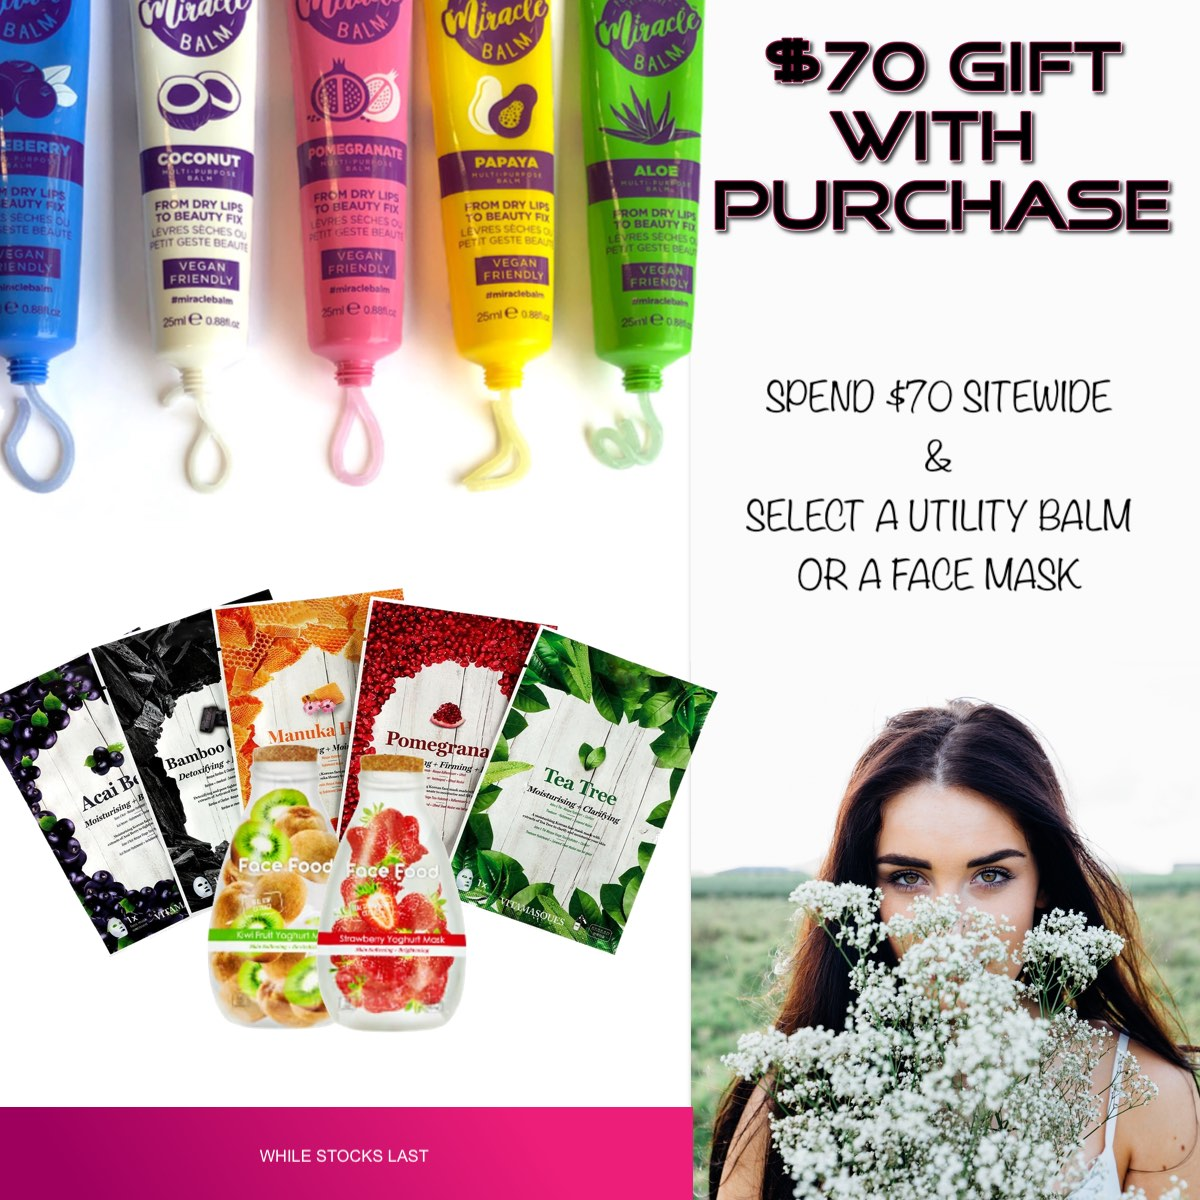 bella scoop gift with purchase $29 spend